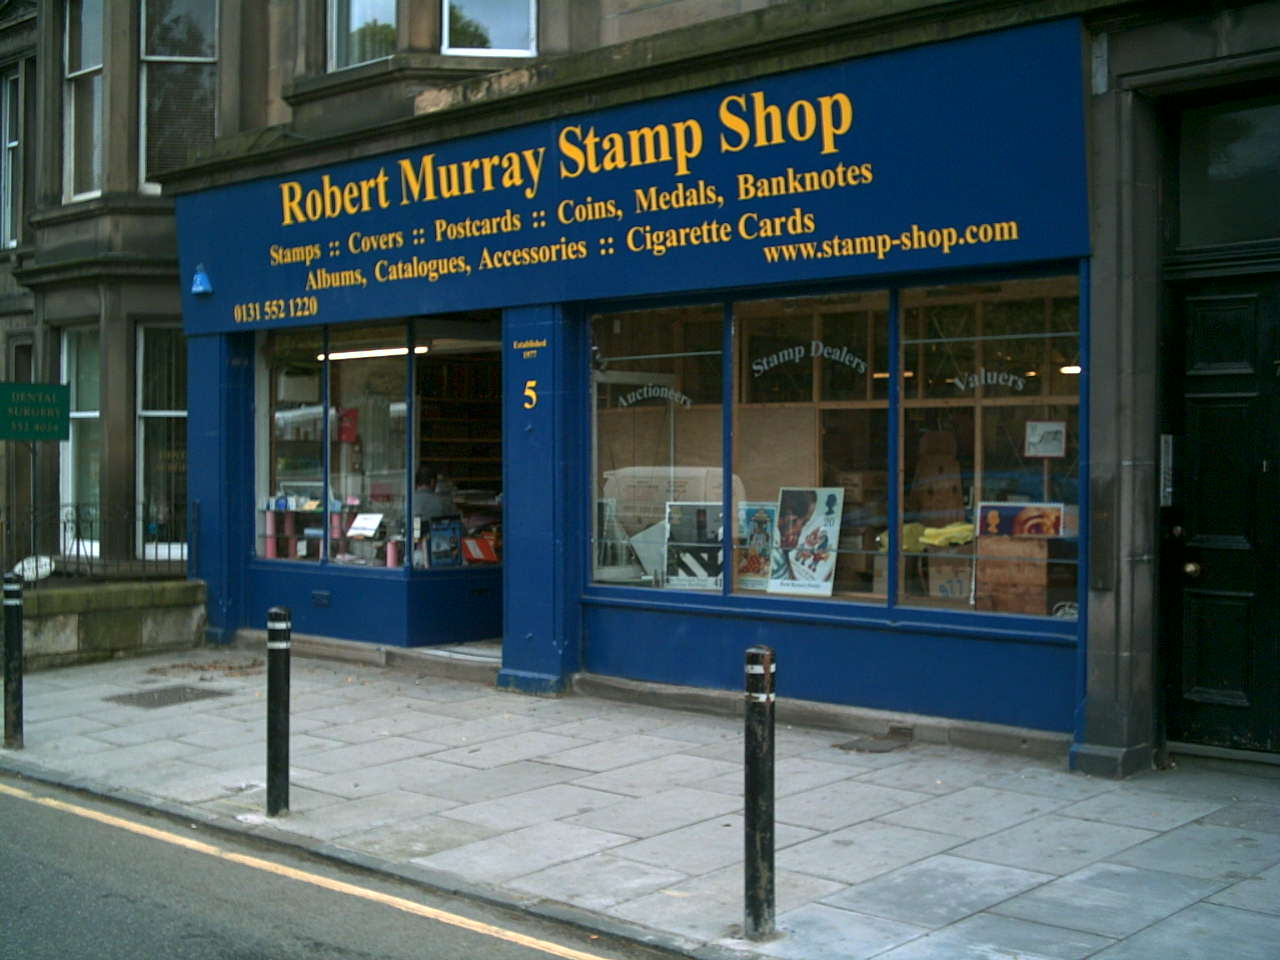 Robert Murray's StampShop in